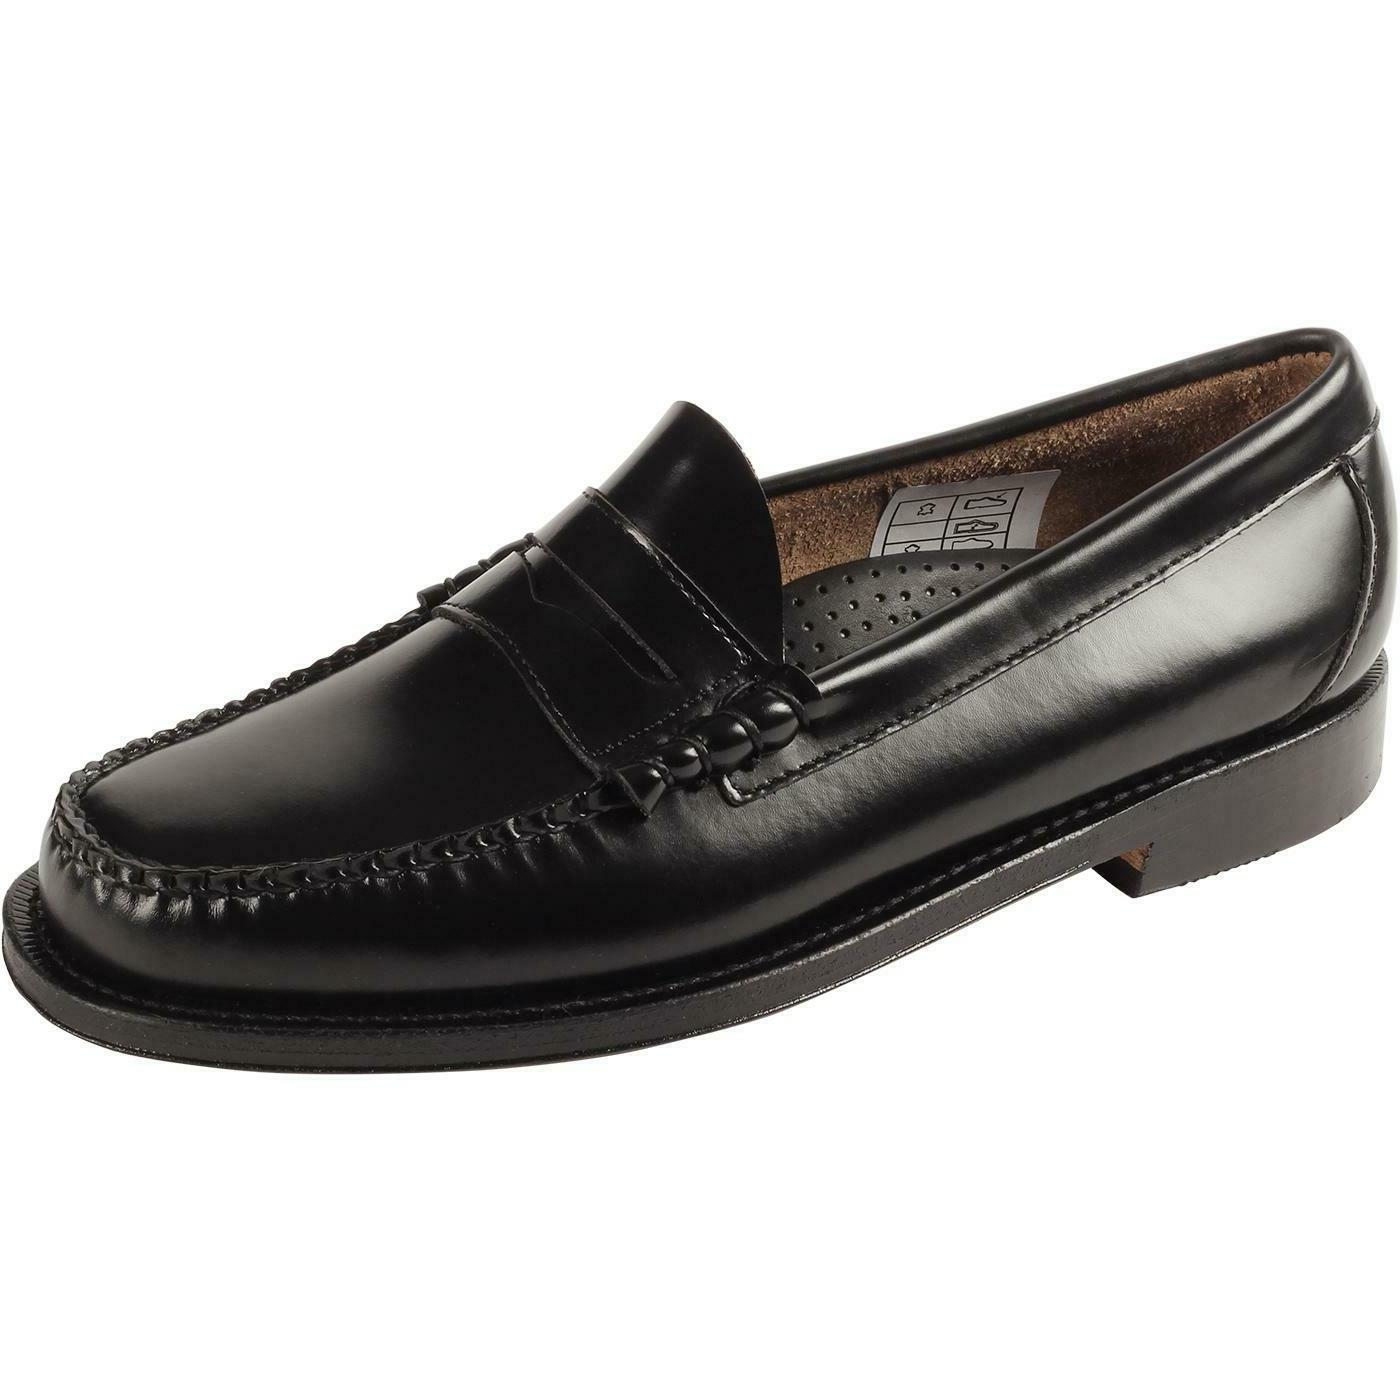 g h bass and co larson black